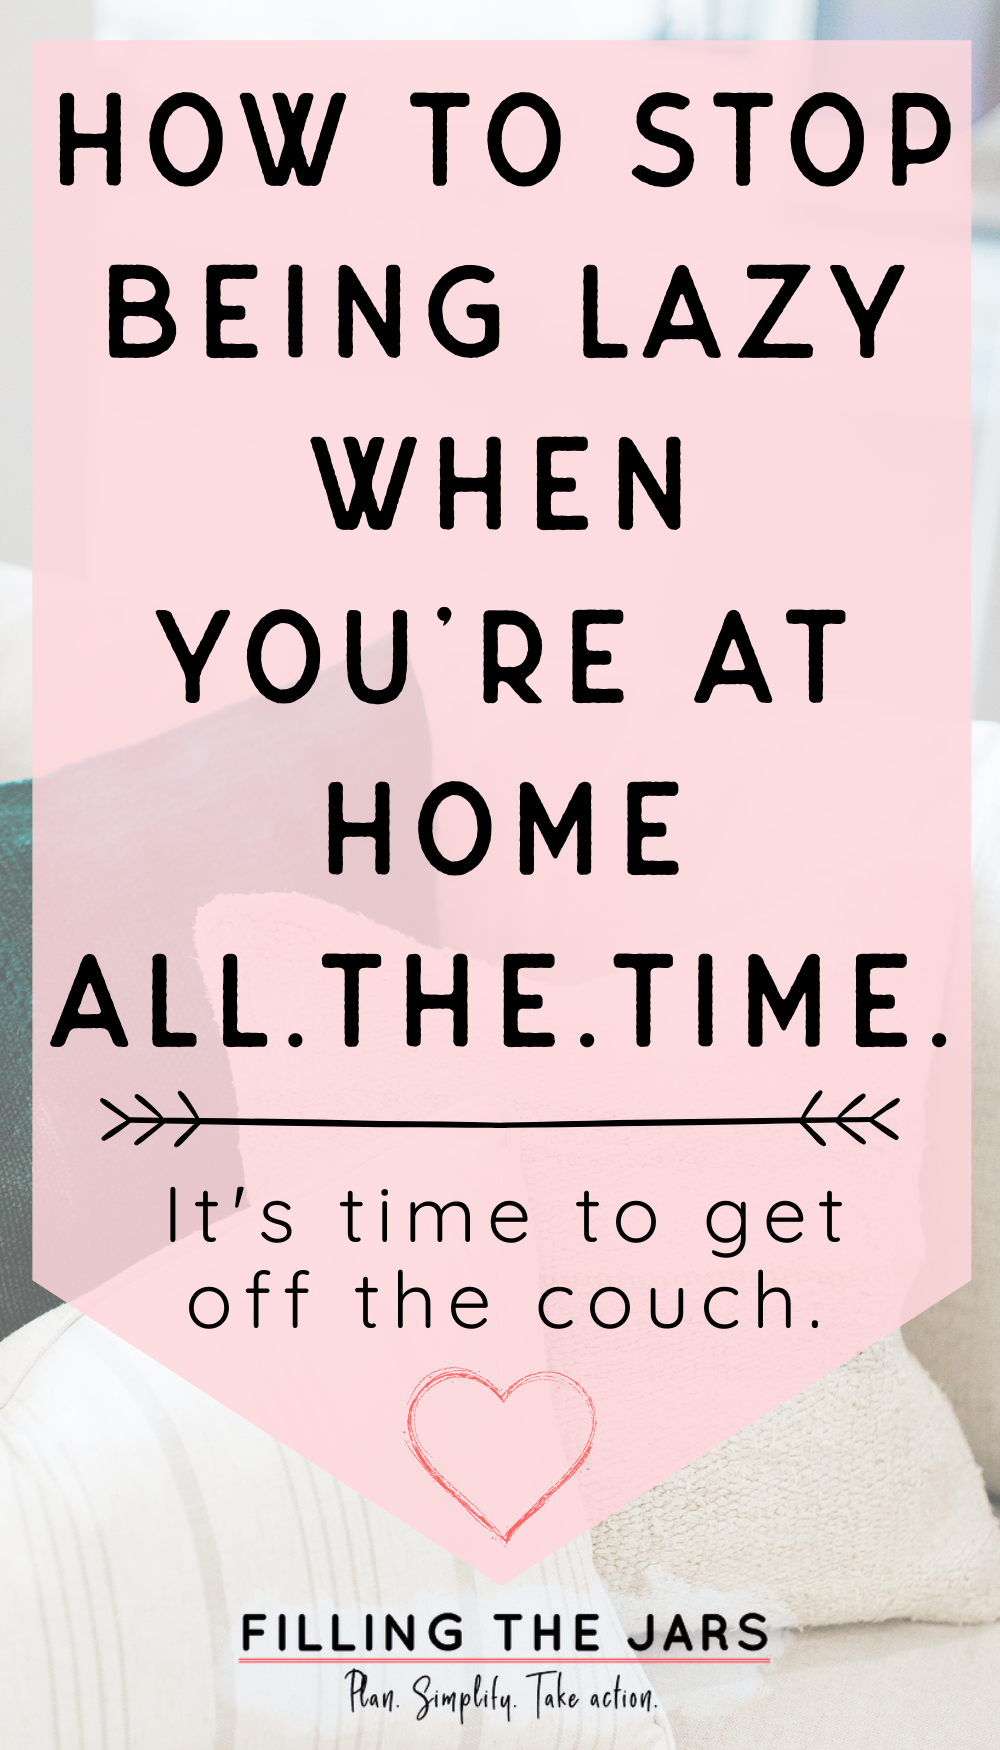 How To Stop Being Lazy At Home